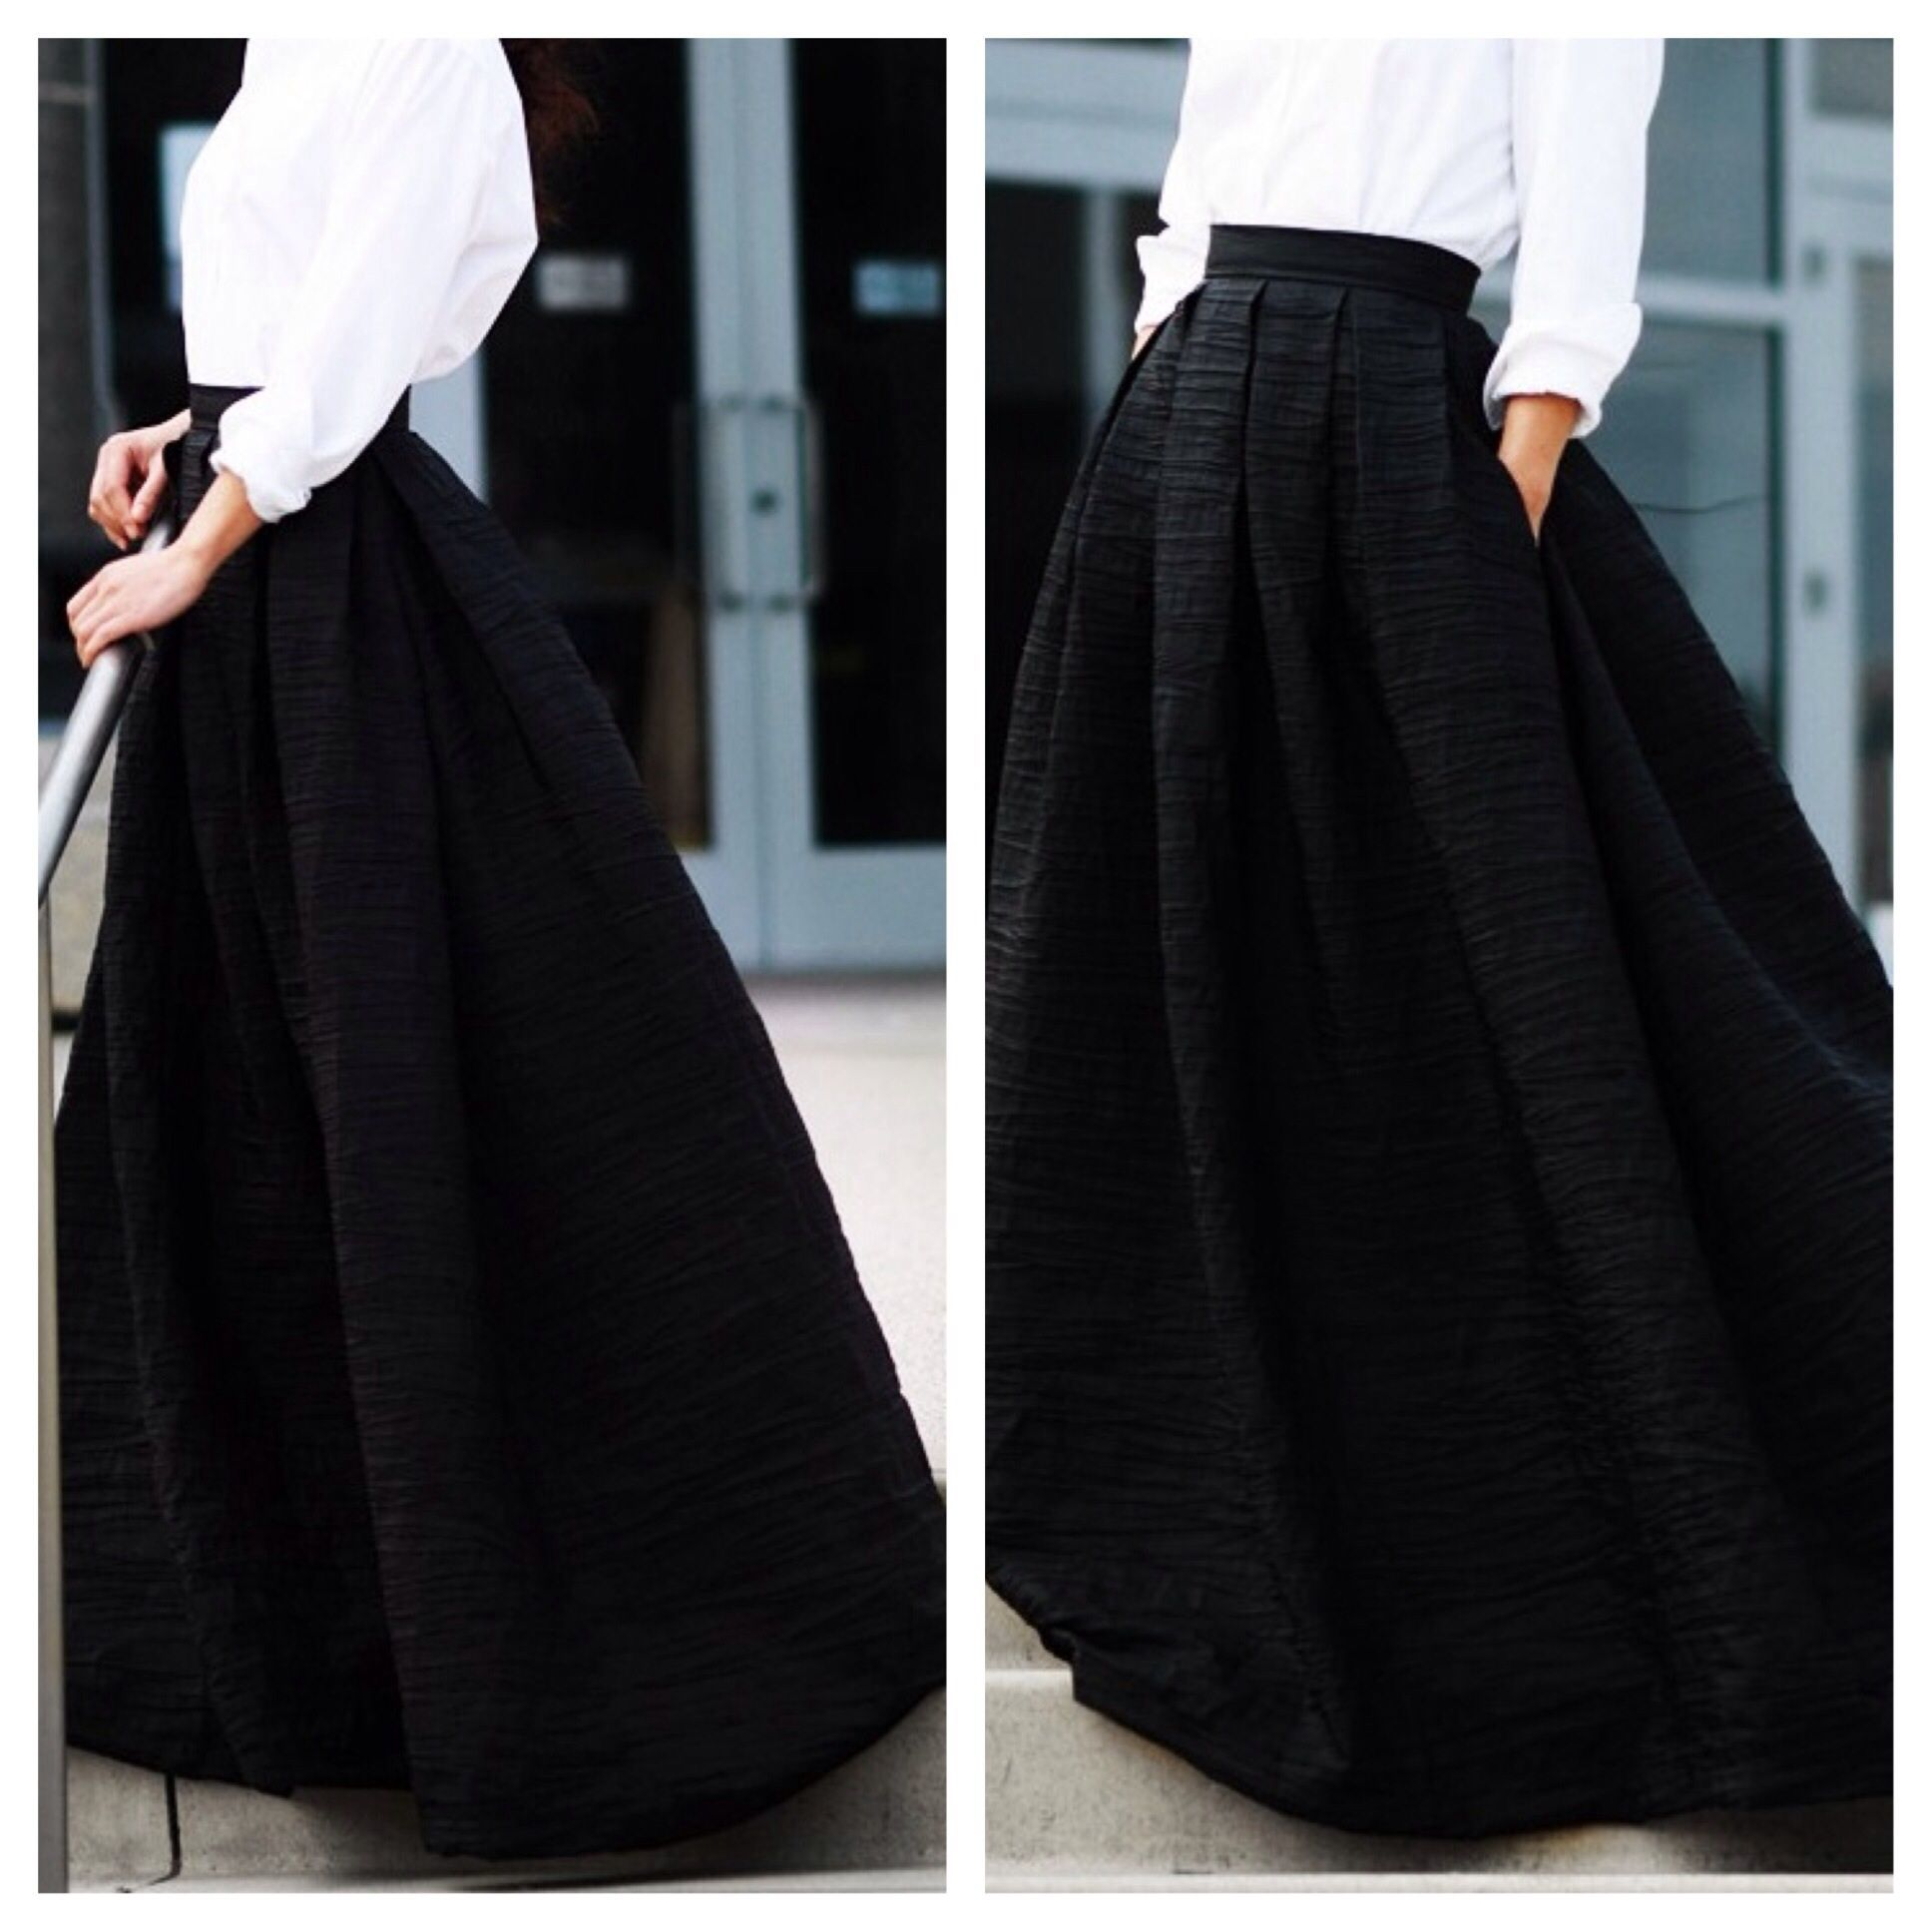 BLACK BALL GOWN MAXI SKIRT - D.I.R. FASHION | sewing patterns ...